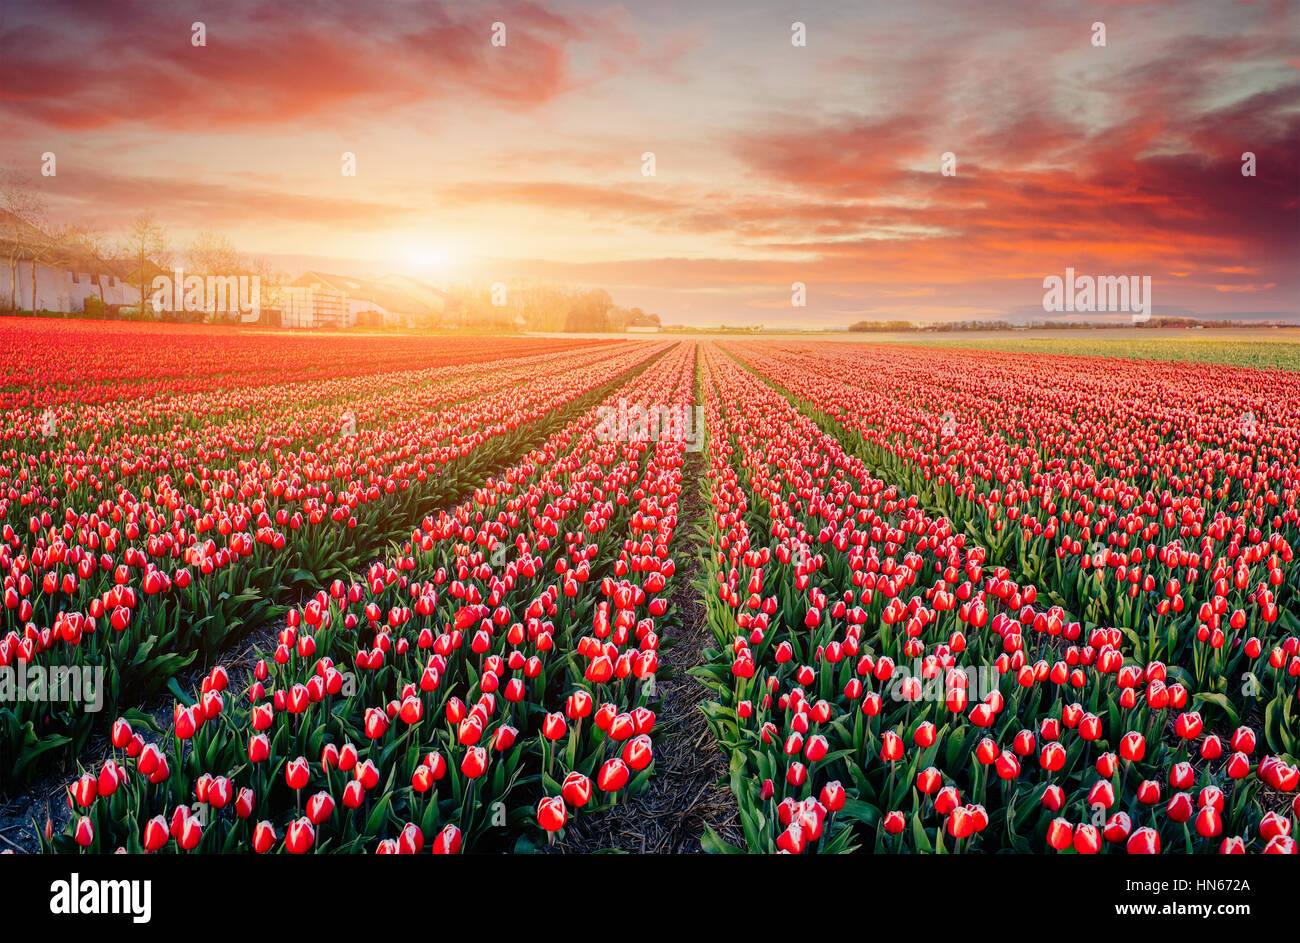 rows of pink tulips in Holland. - Stock Image